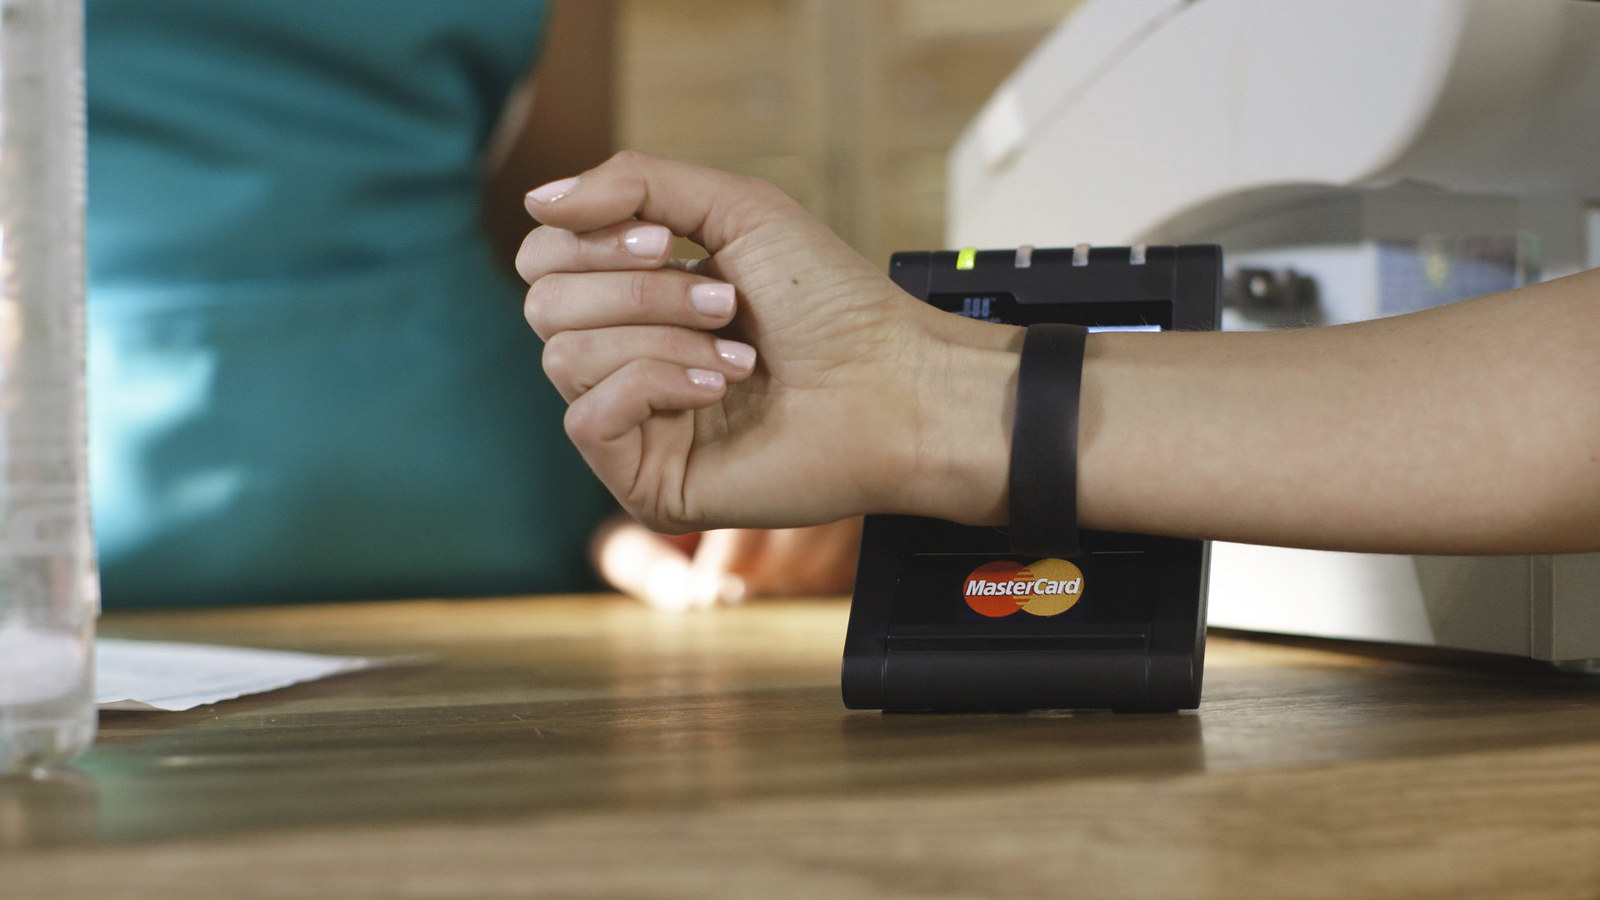 MasterCard aims to bring mobile payments to every gadget